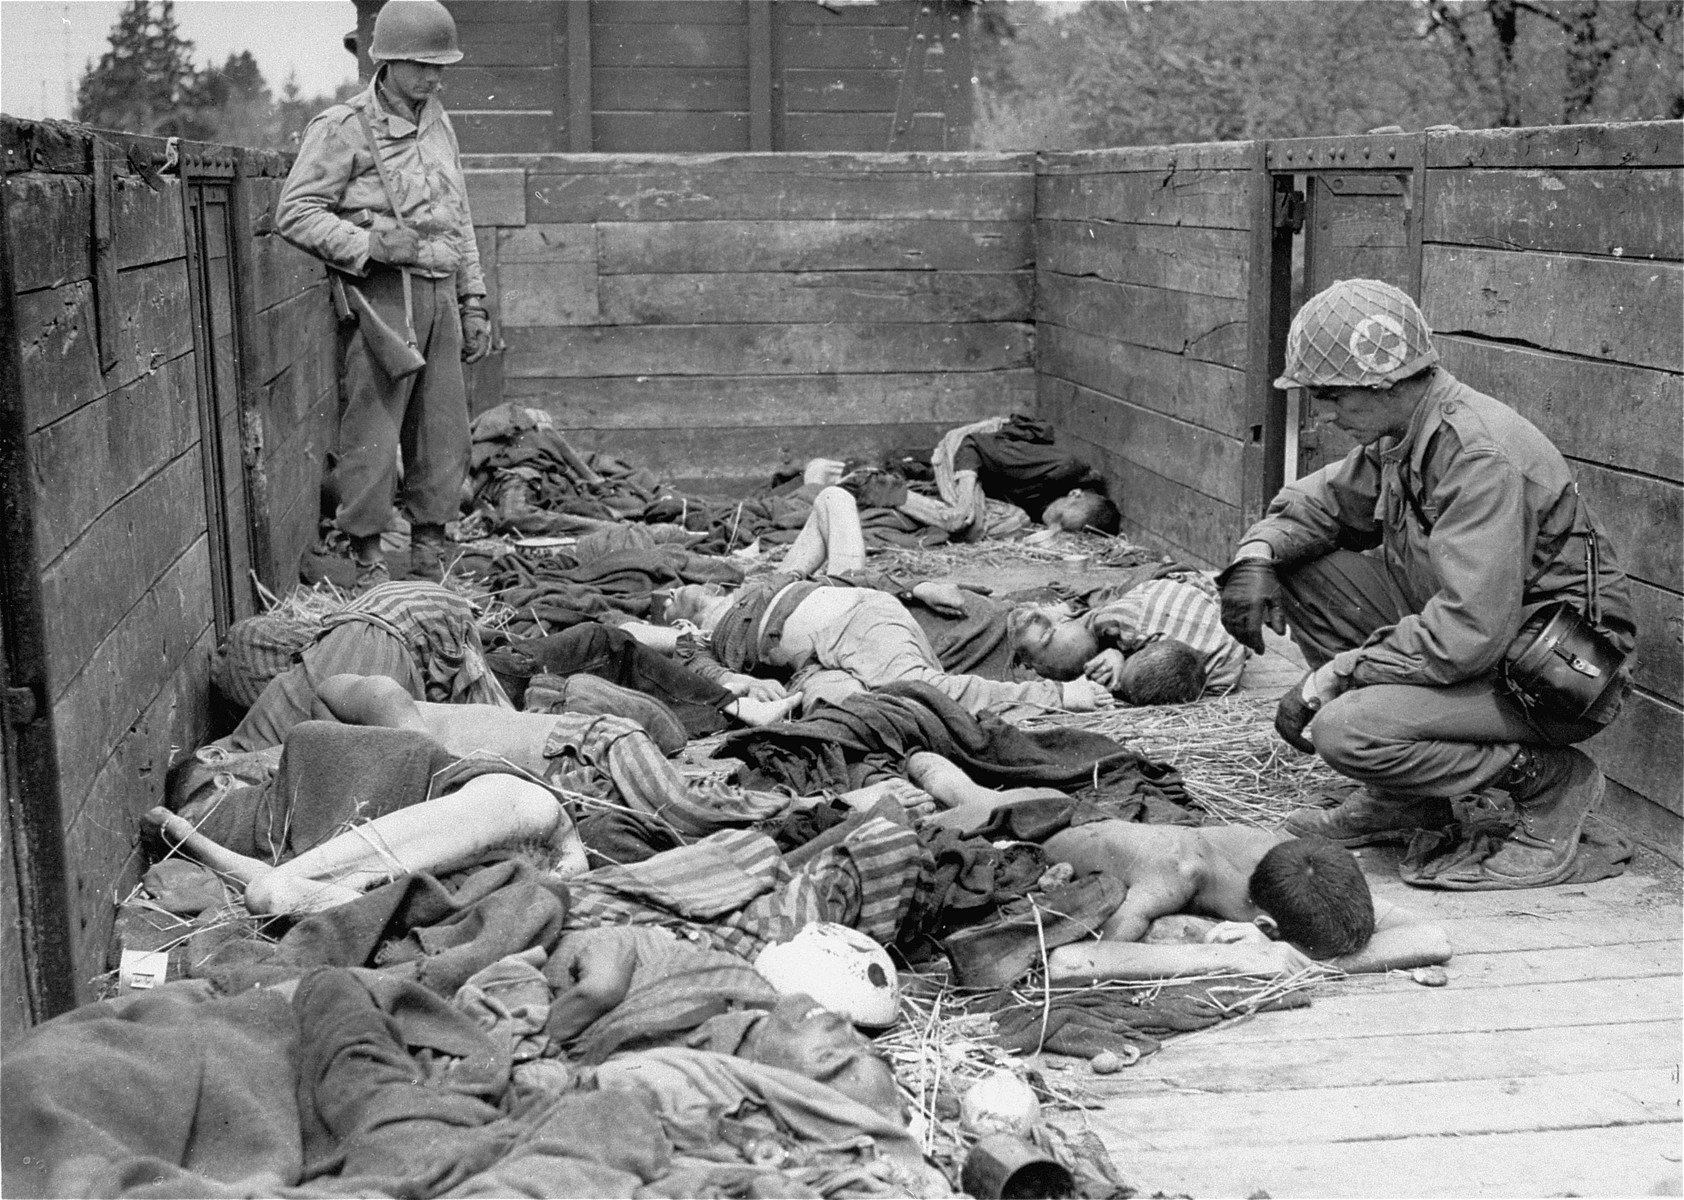 Medical corpsmen of the Seventh US Army view the bodies in one of the open railcars of the Dachau death train.  The soldier standing in the rear of the car is Kenneth Dean Johnston.